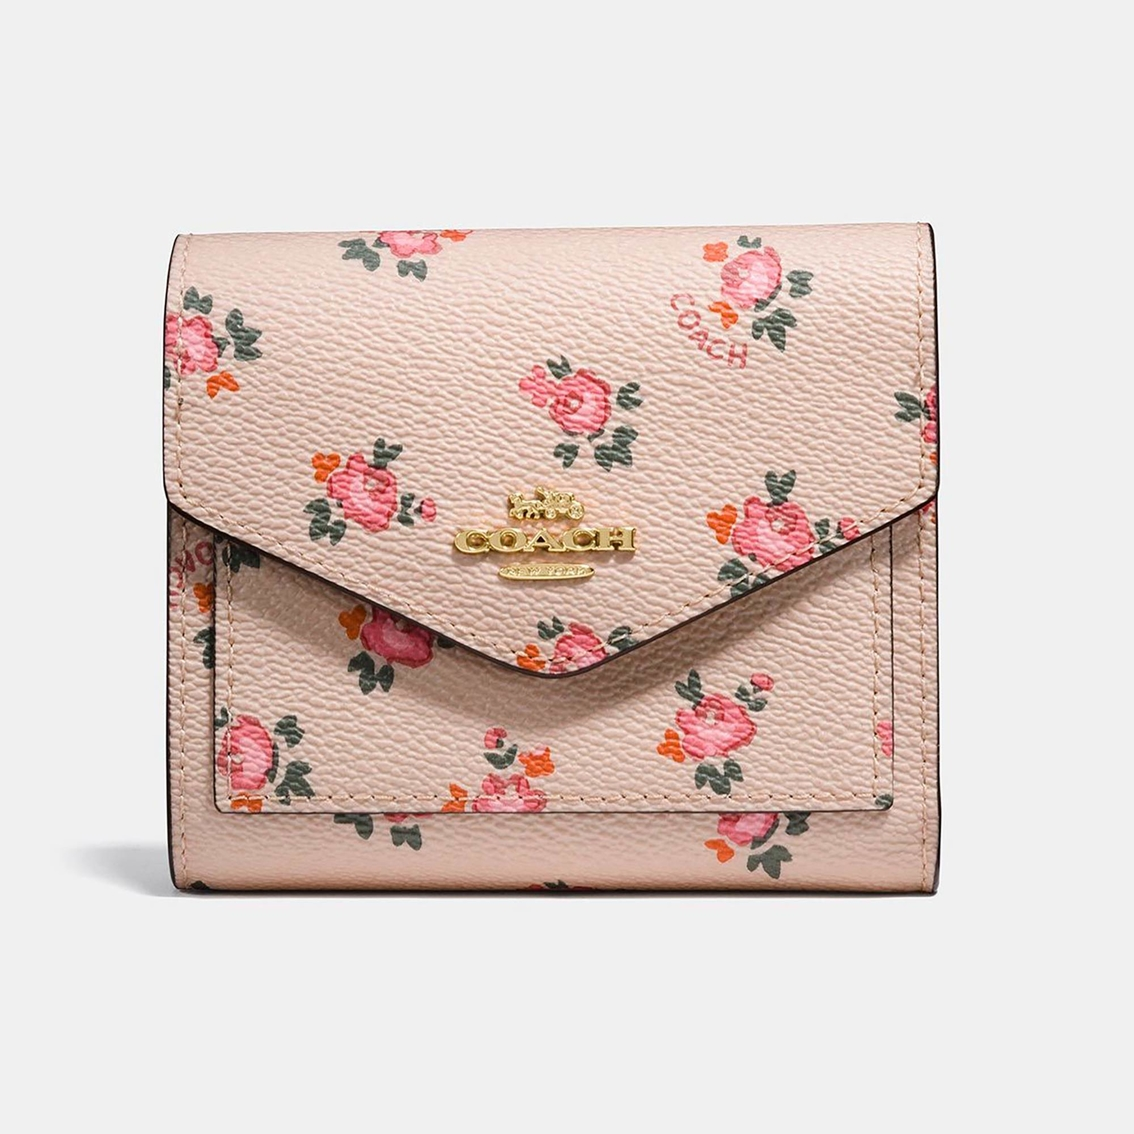 Coach small wallet with floral bloom print wallets handbags coach small wallet with floral bloom print mightylinksfo